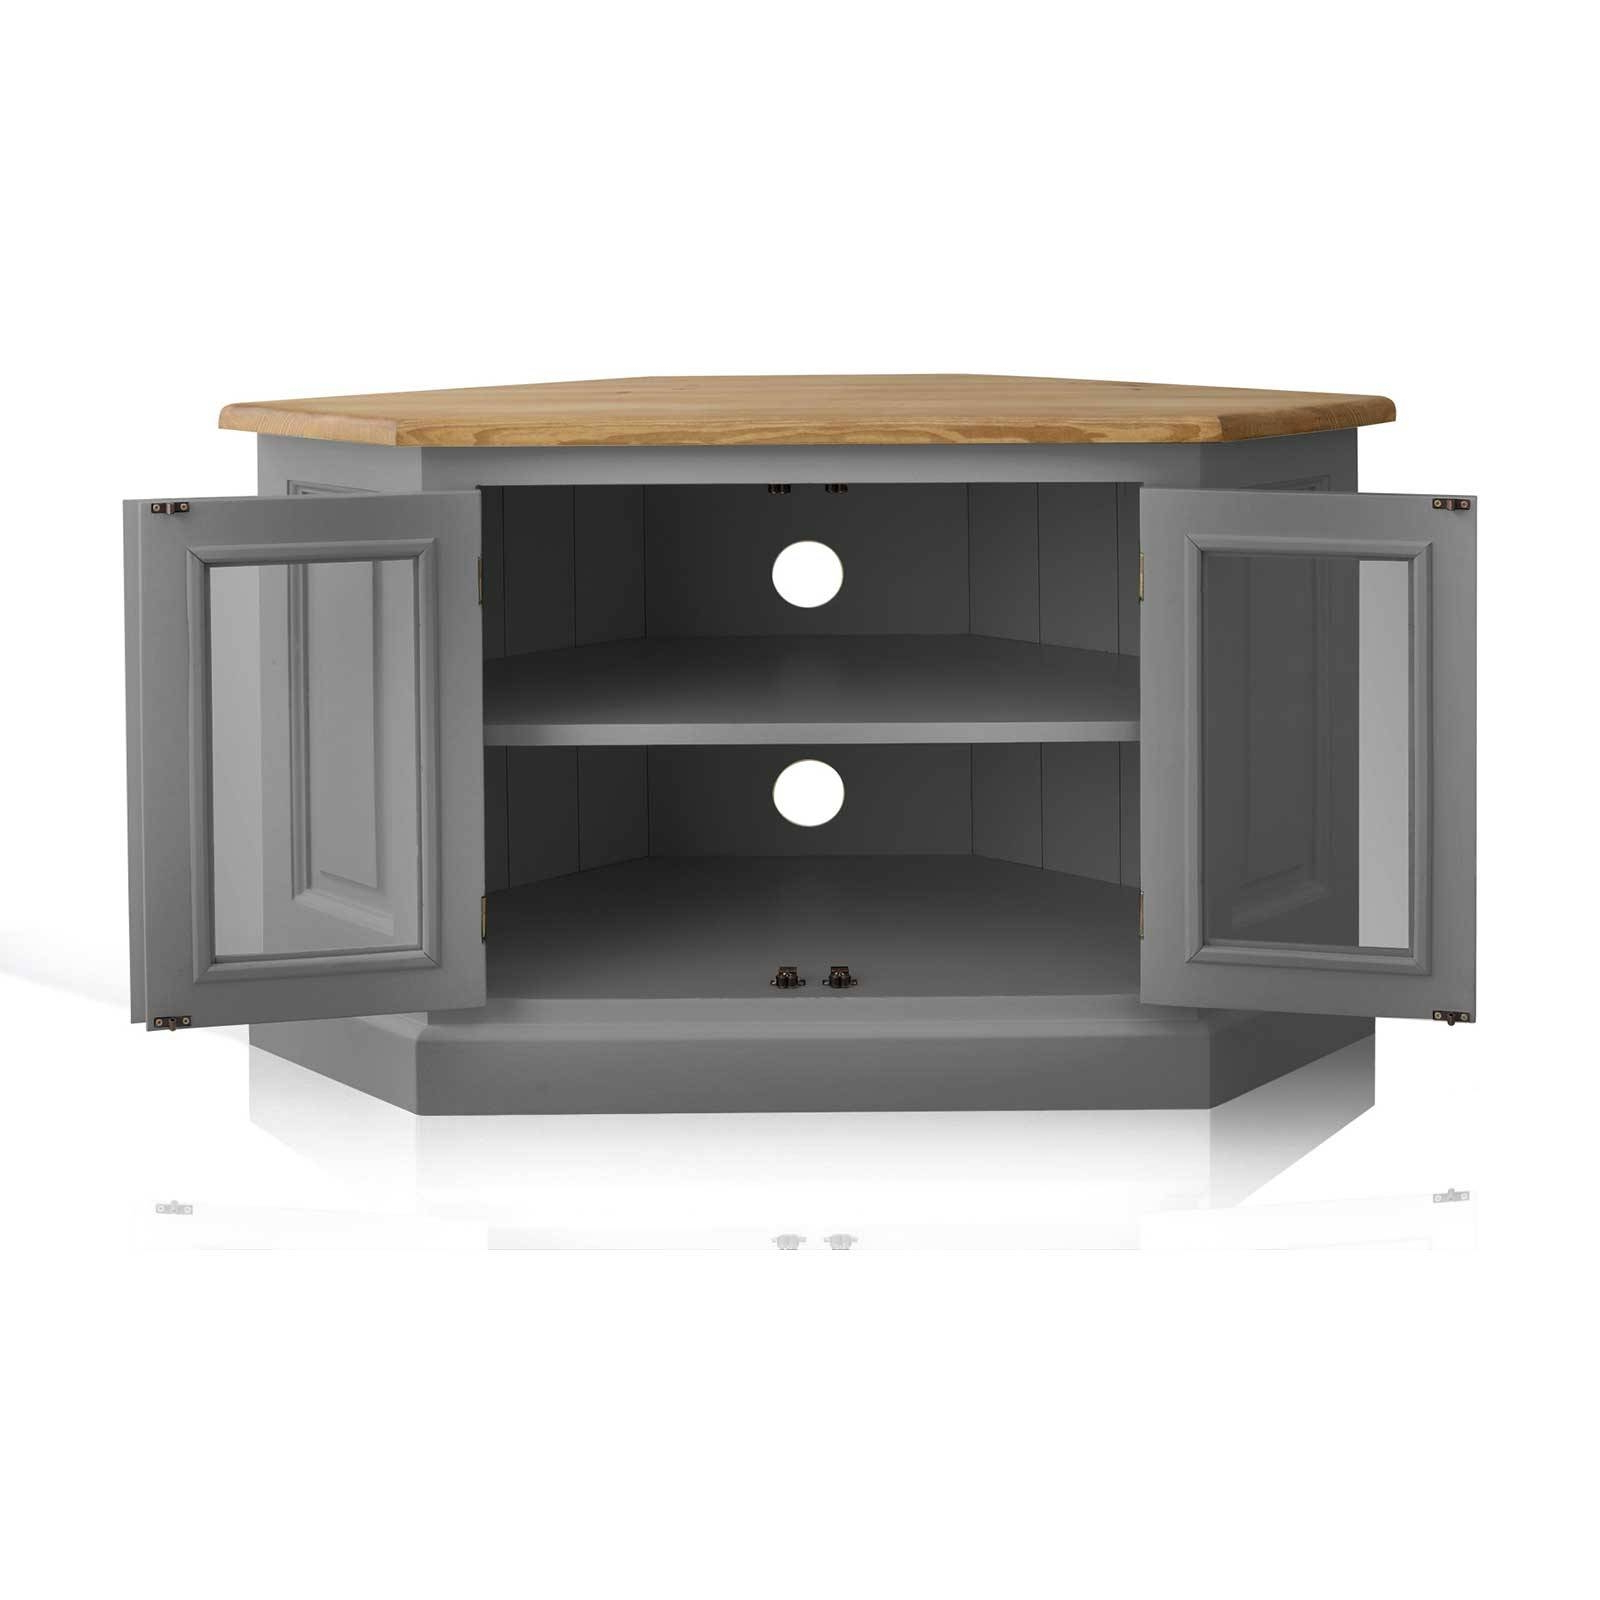 Tv Stands With Mount Rustic Wood Stand Modern Sliding Barn Doors Intended For Casey Grey 74 Inch Tv Stands (View 6 of 20)